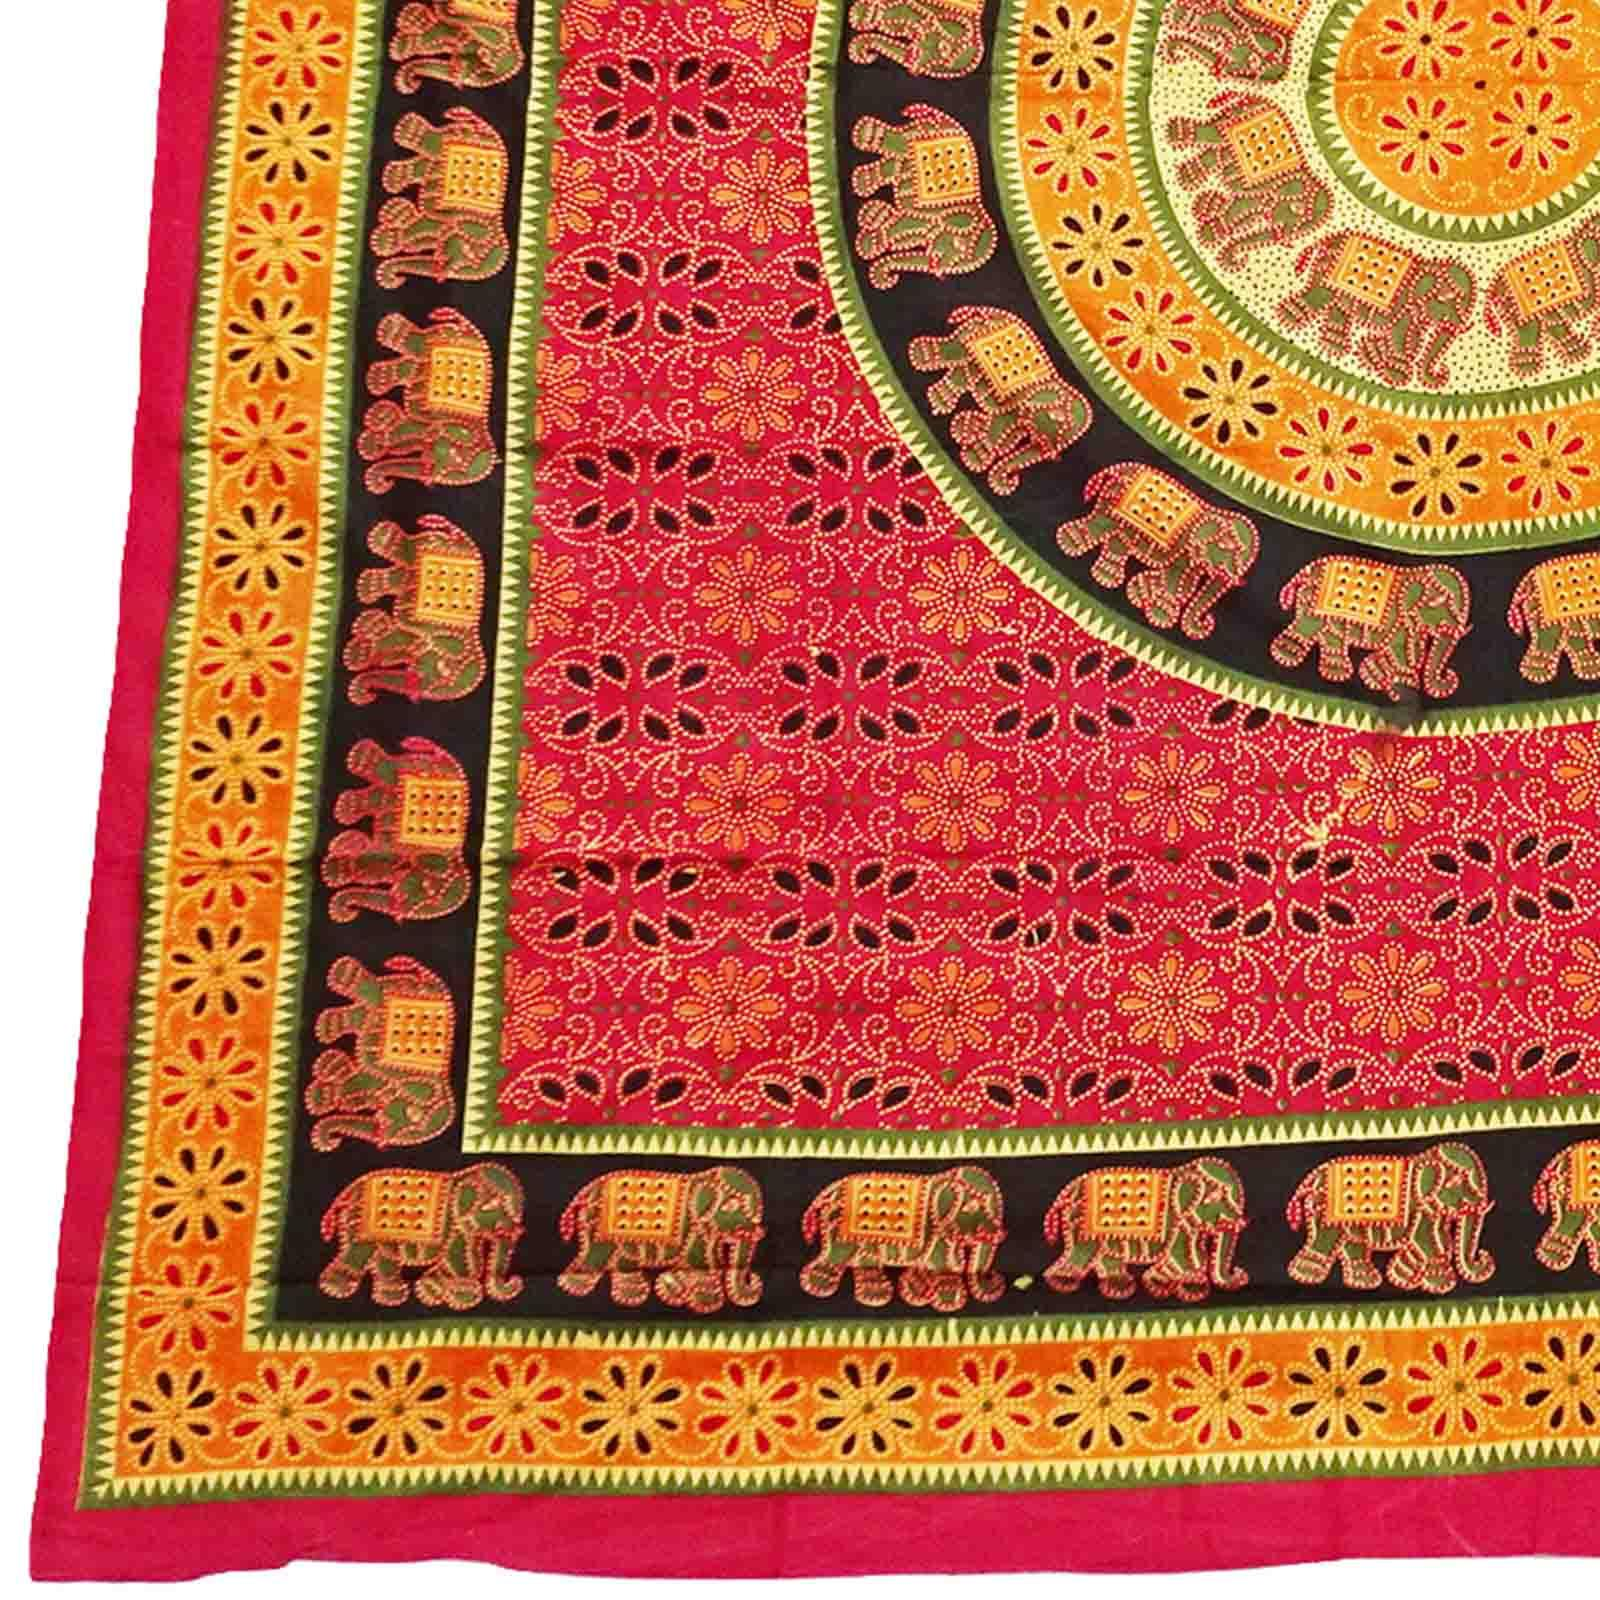 Tagesdecke Elefant Tagesdecke Elefant Rot Orange Grün Roter Rand Indien Wandbehang